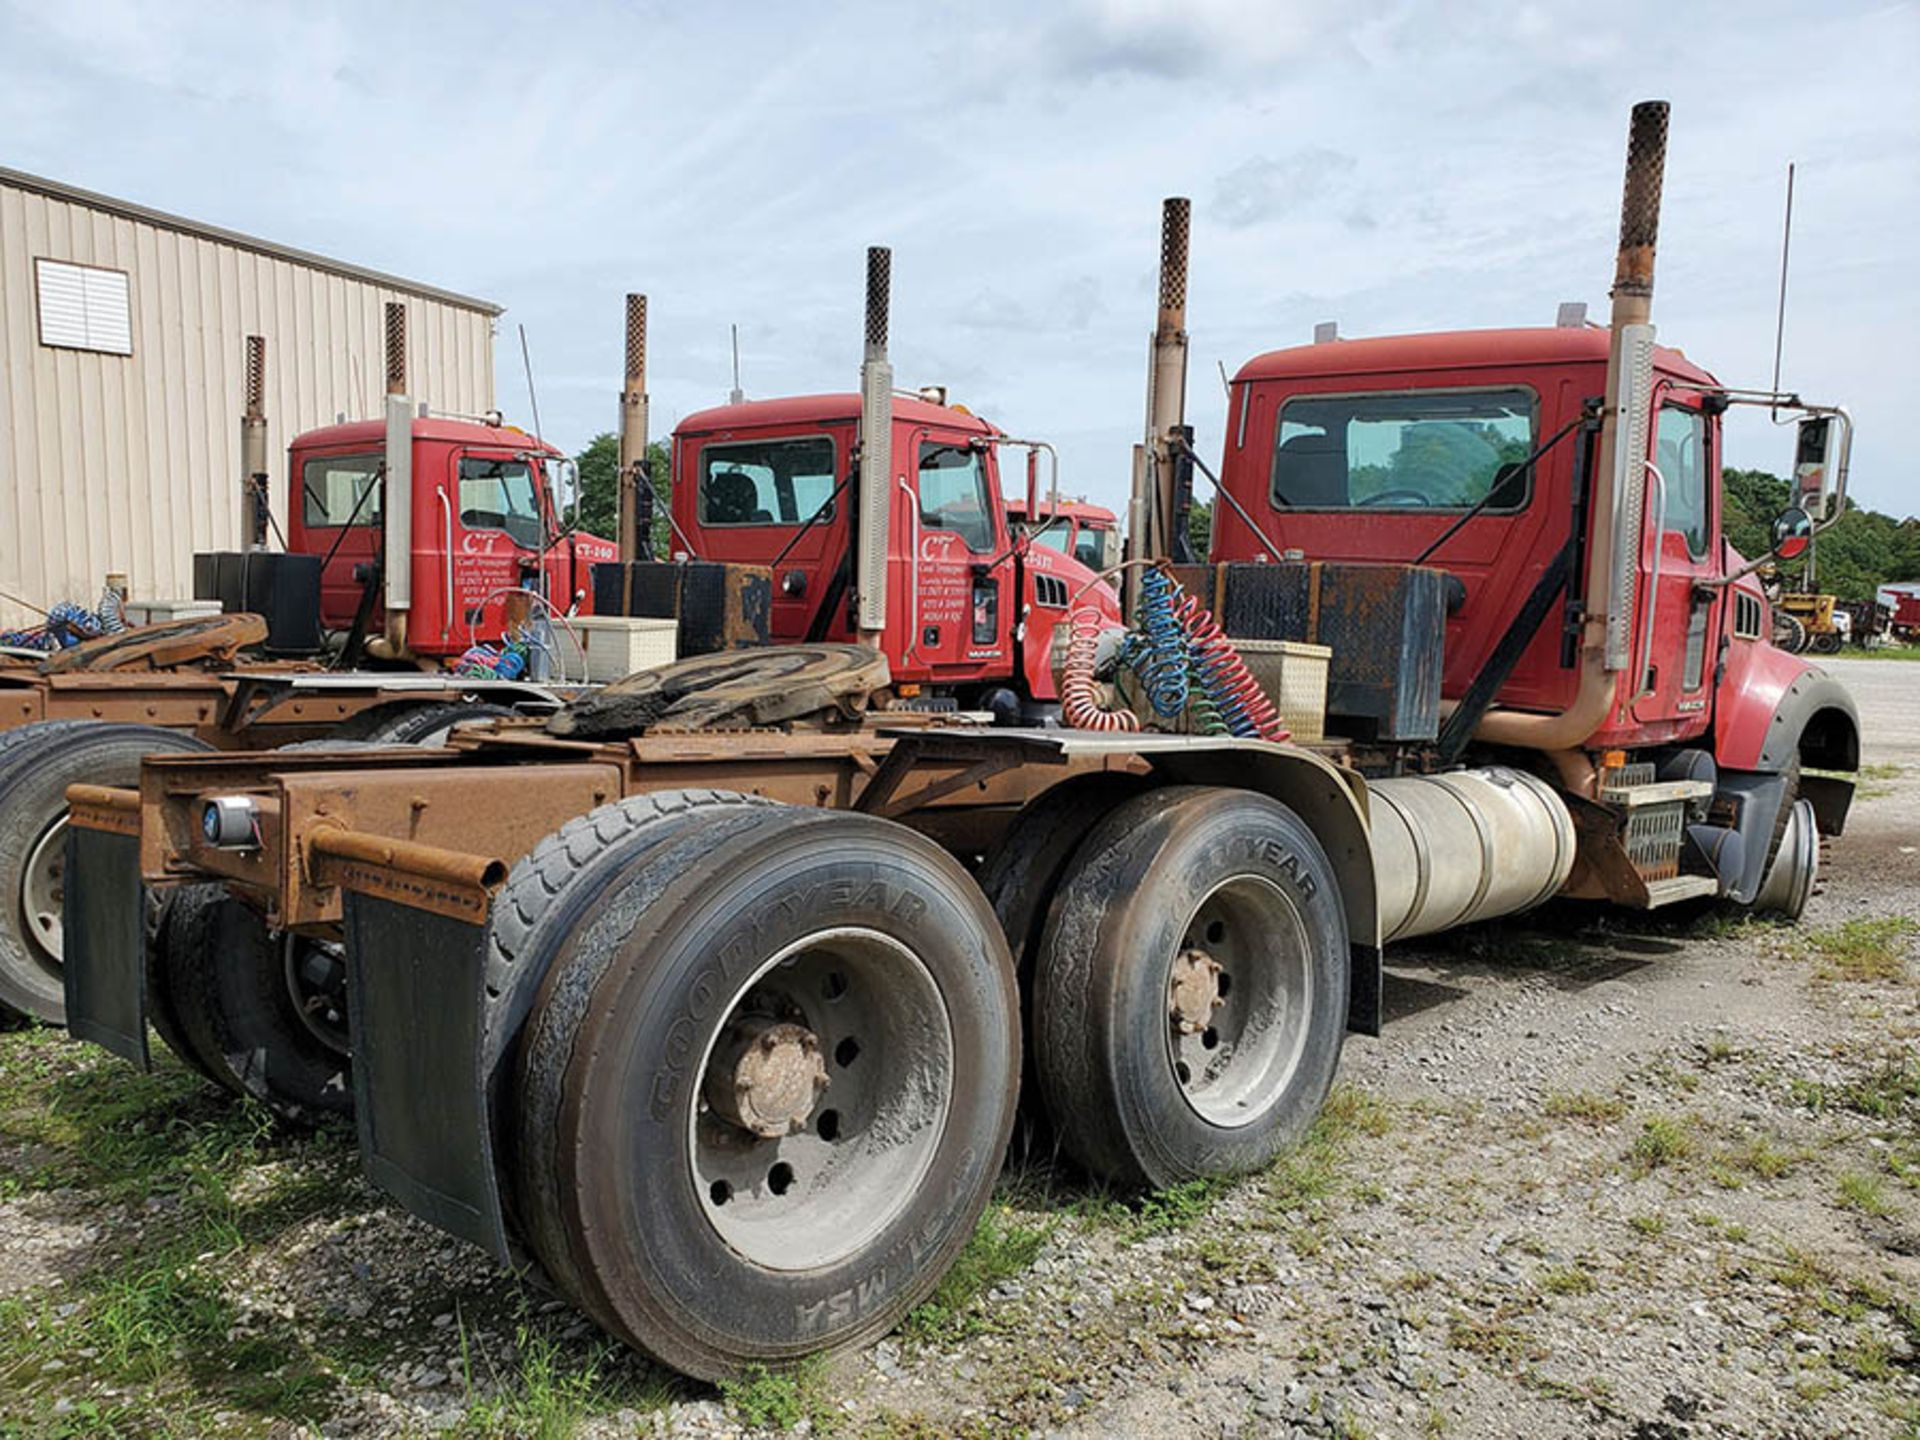 Lot 13 - 2009 MACK GU713 T/A DAY CAB TRACTOR, MAXITORQUE 18 SPEED TRANS., WET LINES MACK INLINE SIX DIESEL